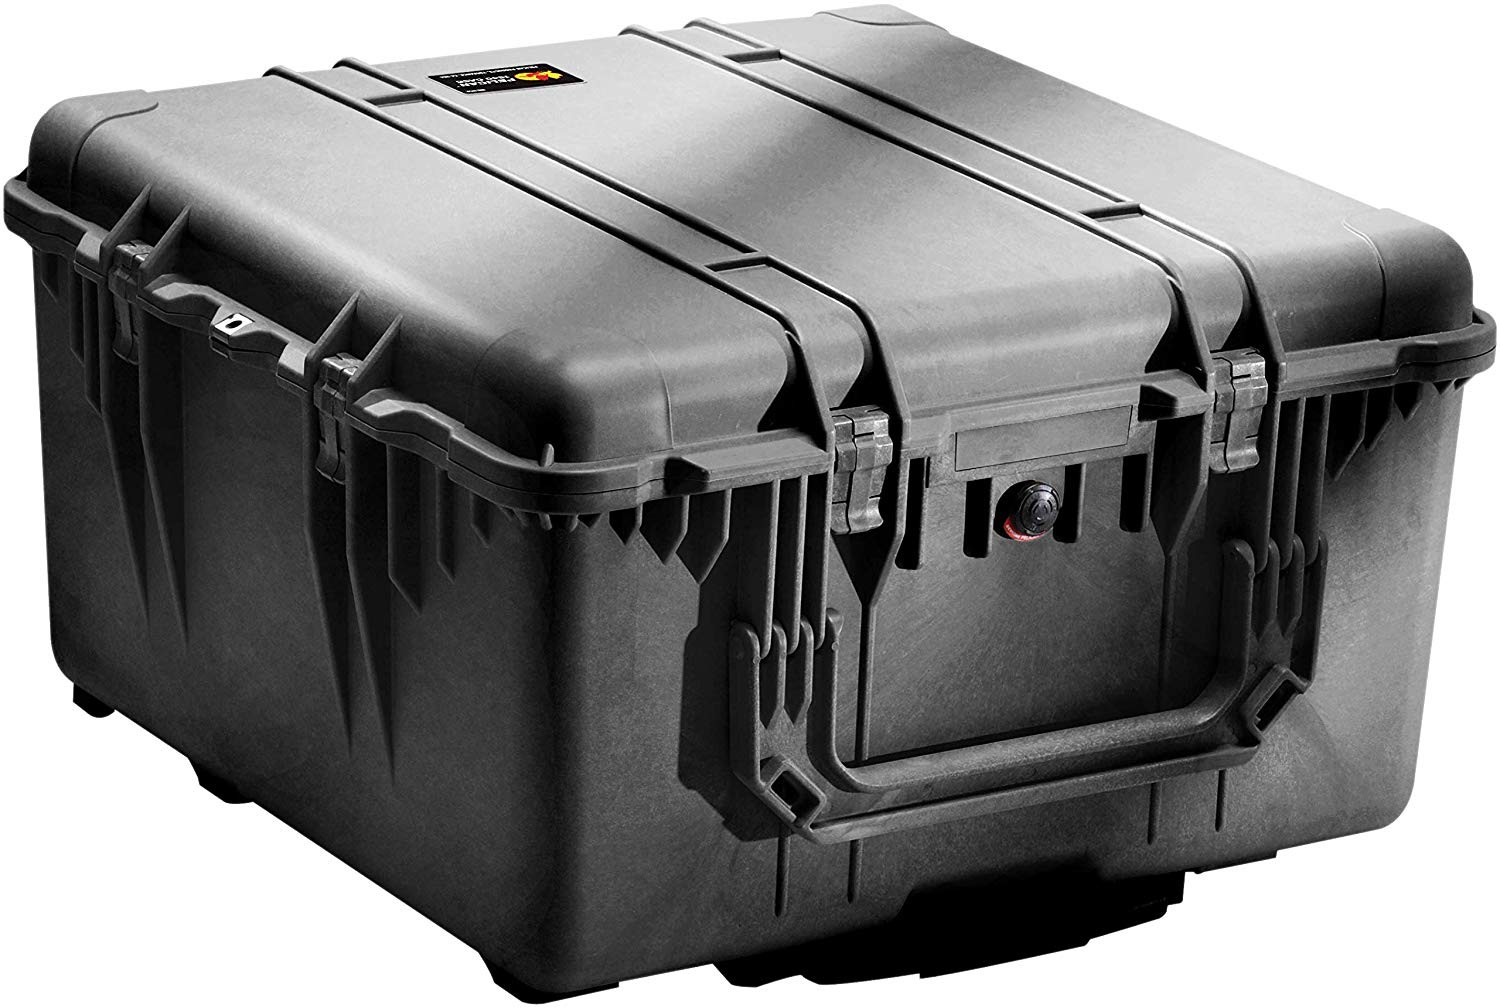 Pelican 1640-000-110 Transport Case With Foam Black 1640-000-110